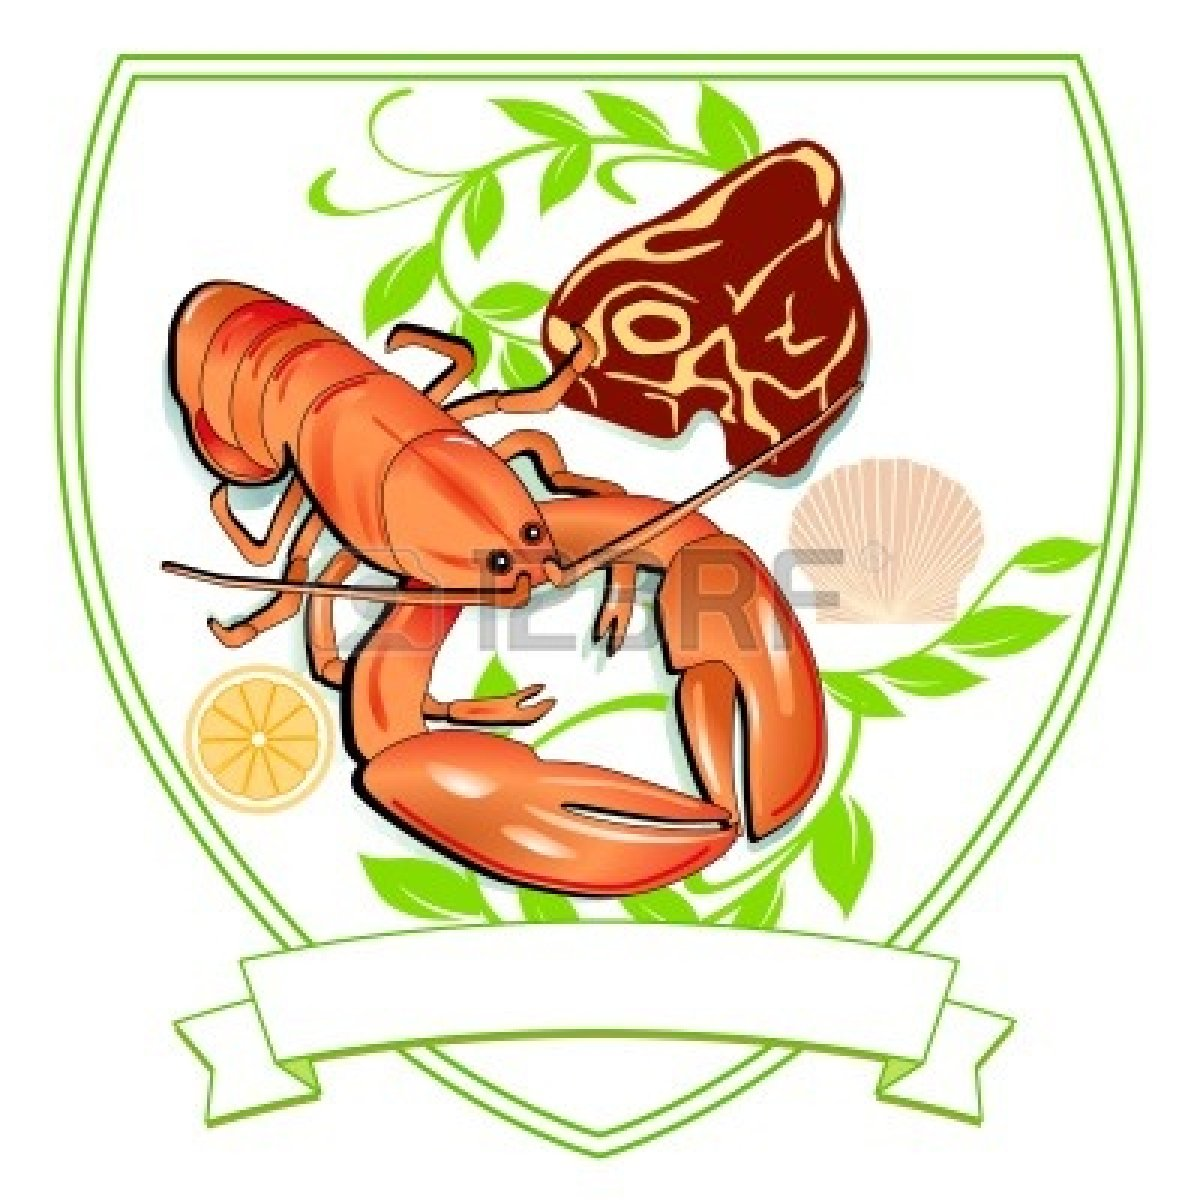 Lobster clipart steak lobster. And clip art library